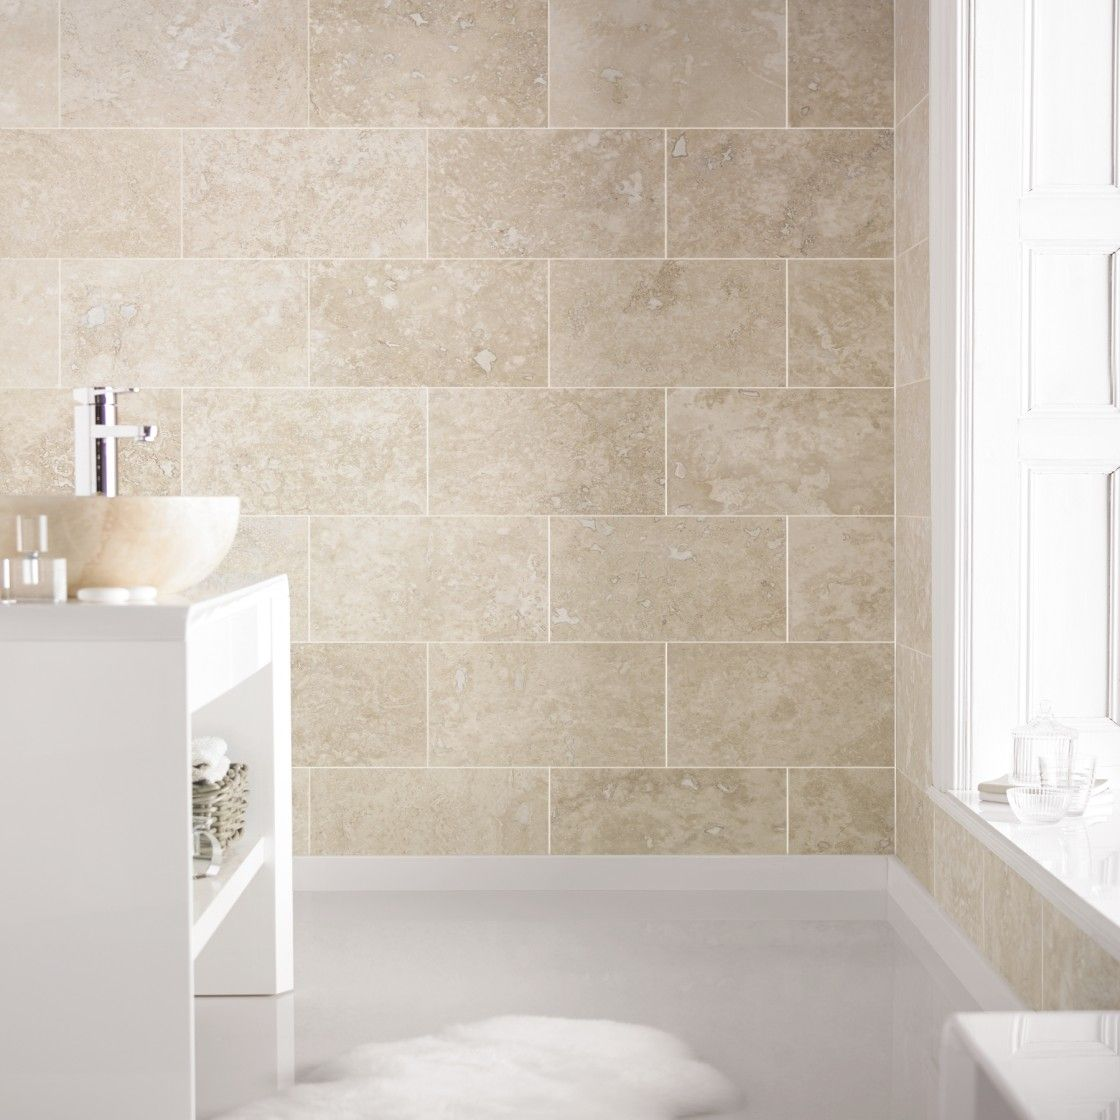 Wall Tile For Bathrooms: Brighten Up Your Home With Lighter Travertine Tiles, Like